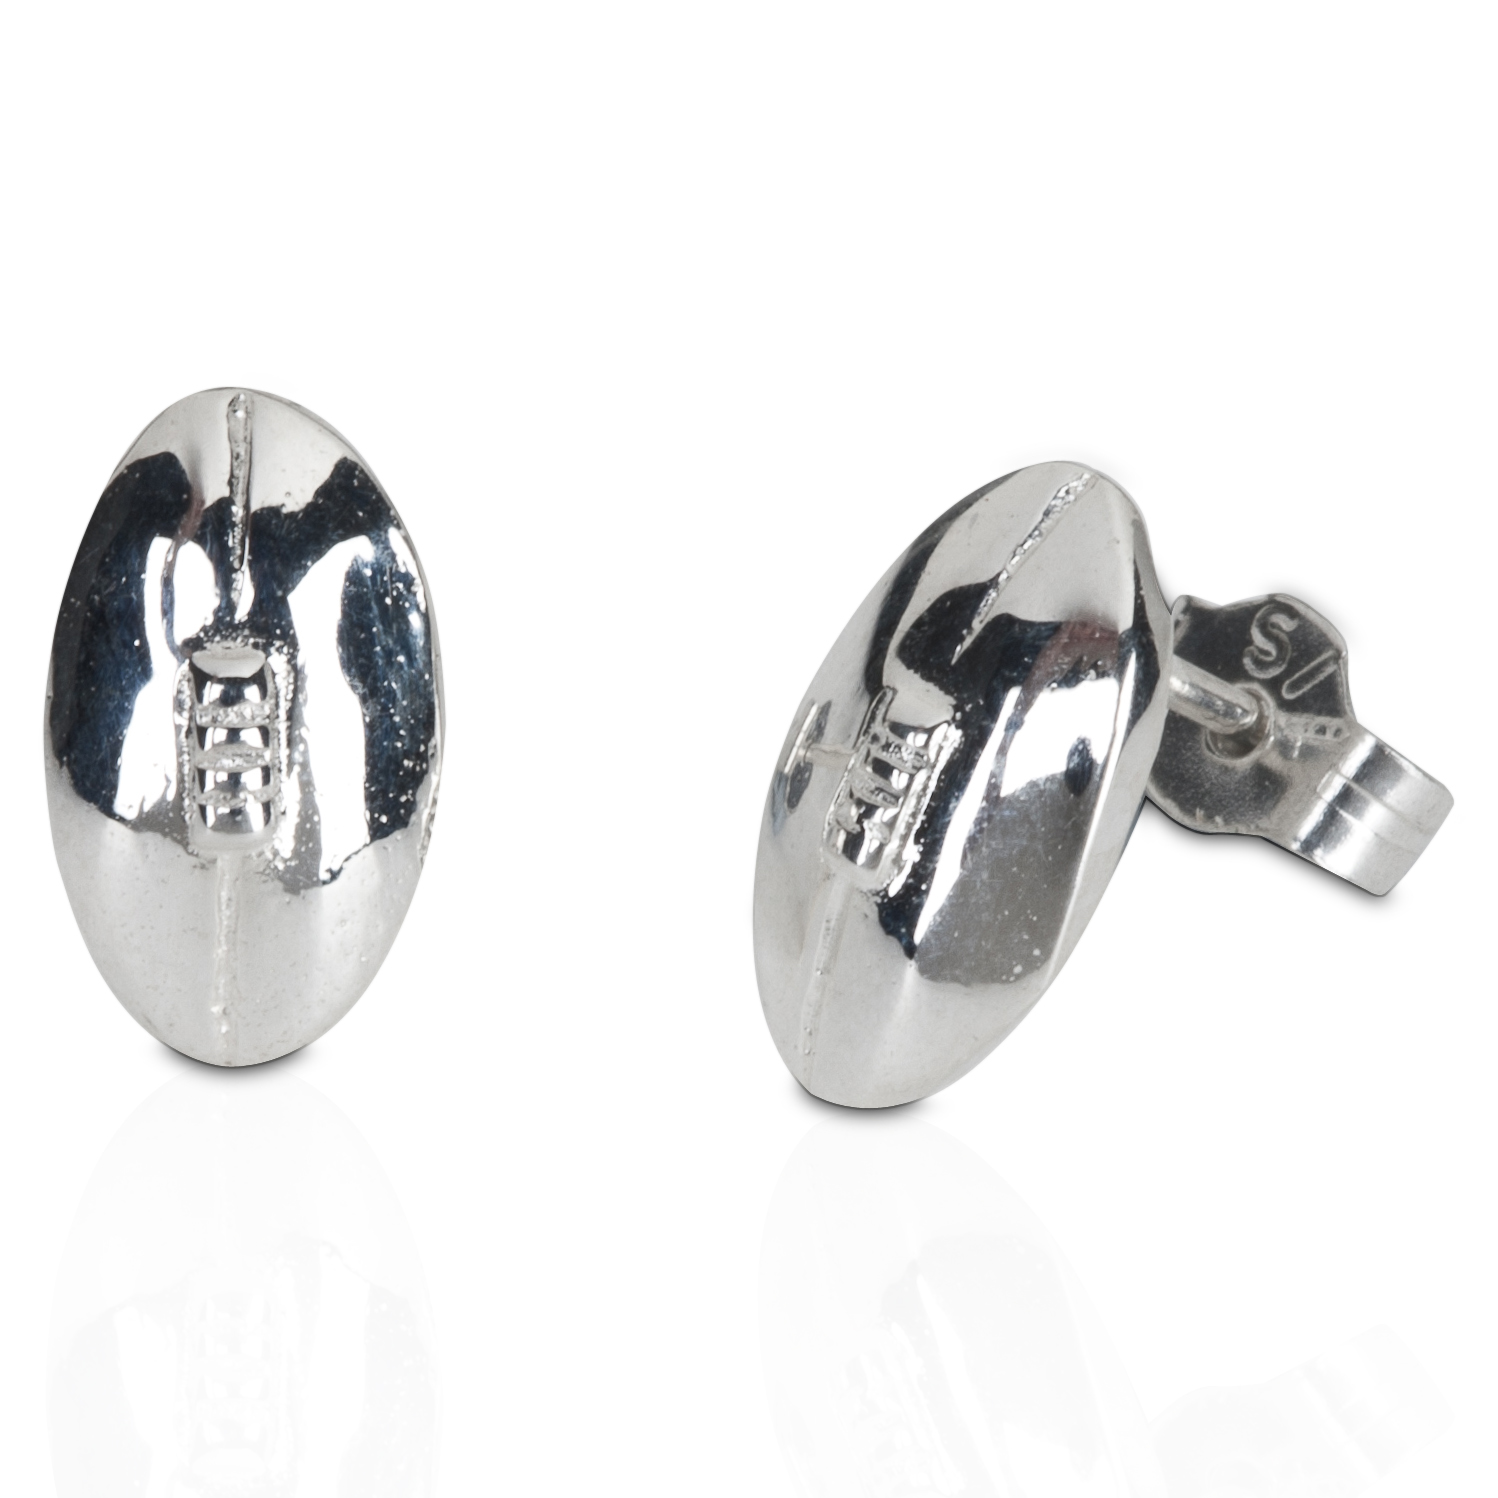 England Rugby Ball Stud Sterling Silver Earrings - Pair